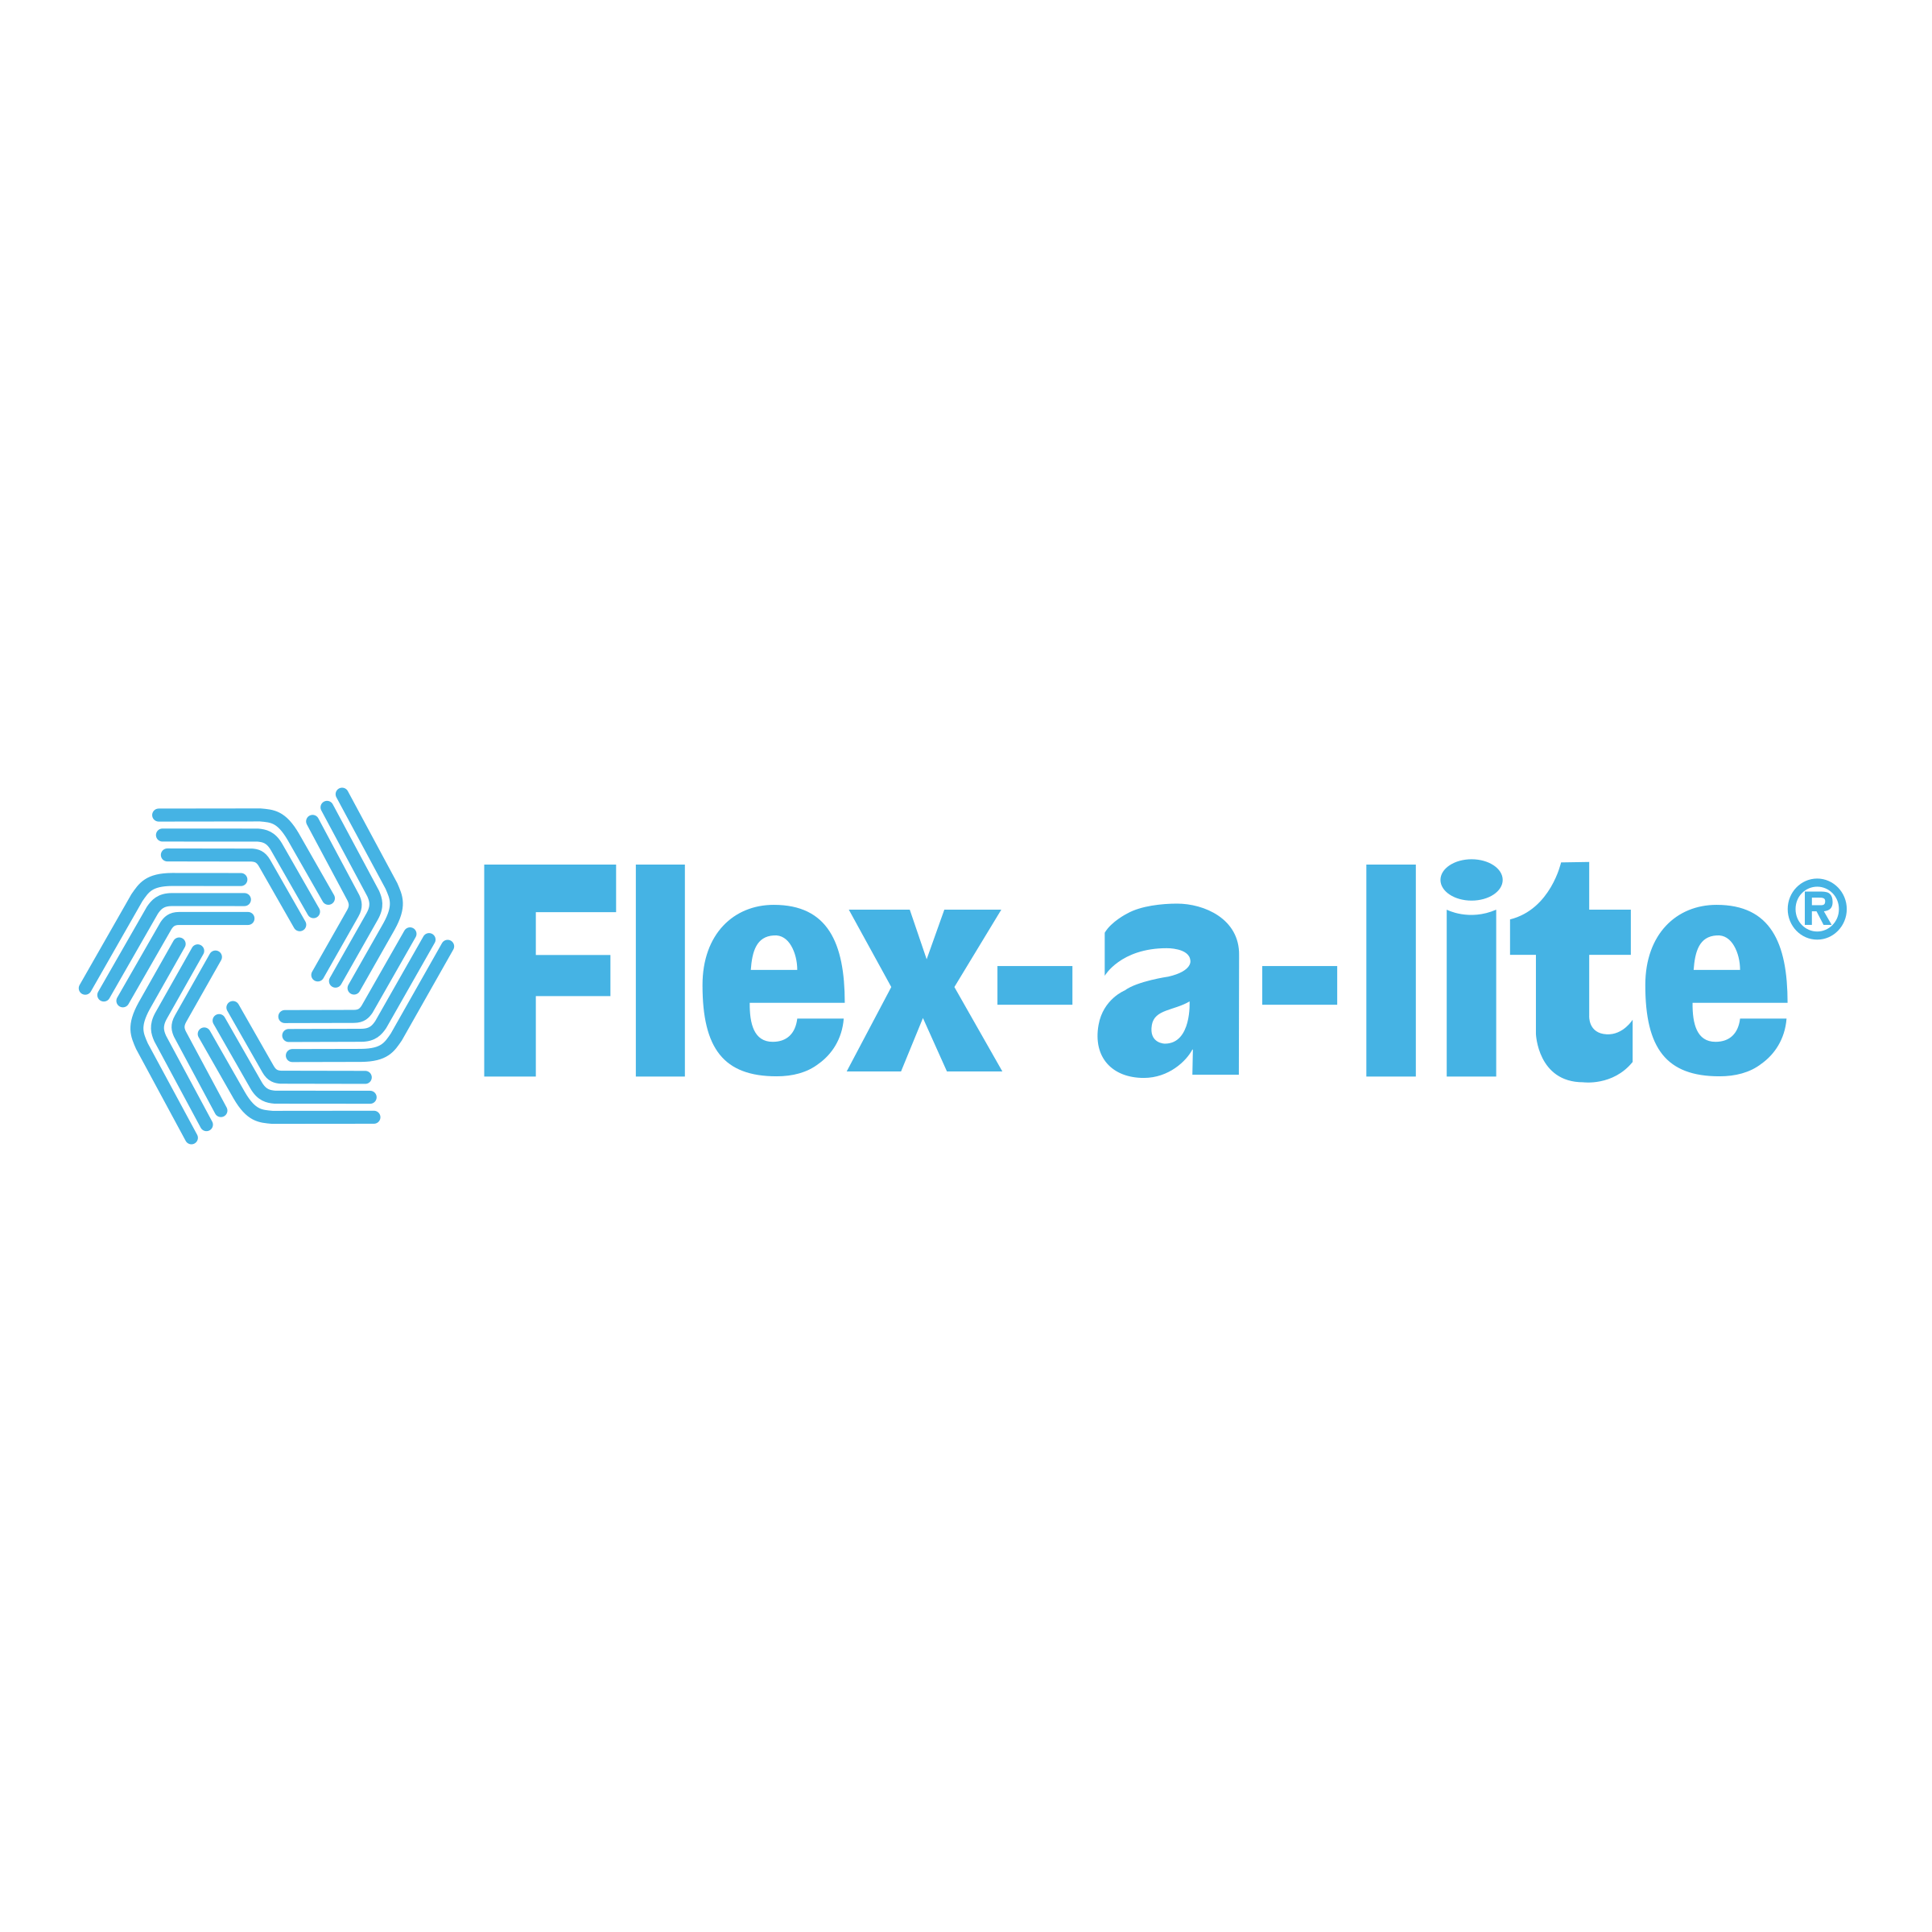 Flex a lite Logo PNG Transparent & SVG Vector.